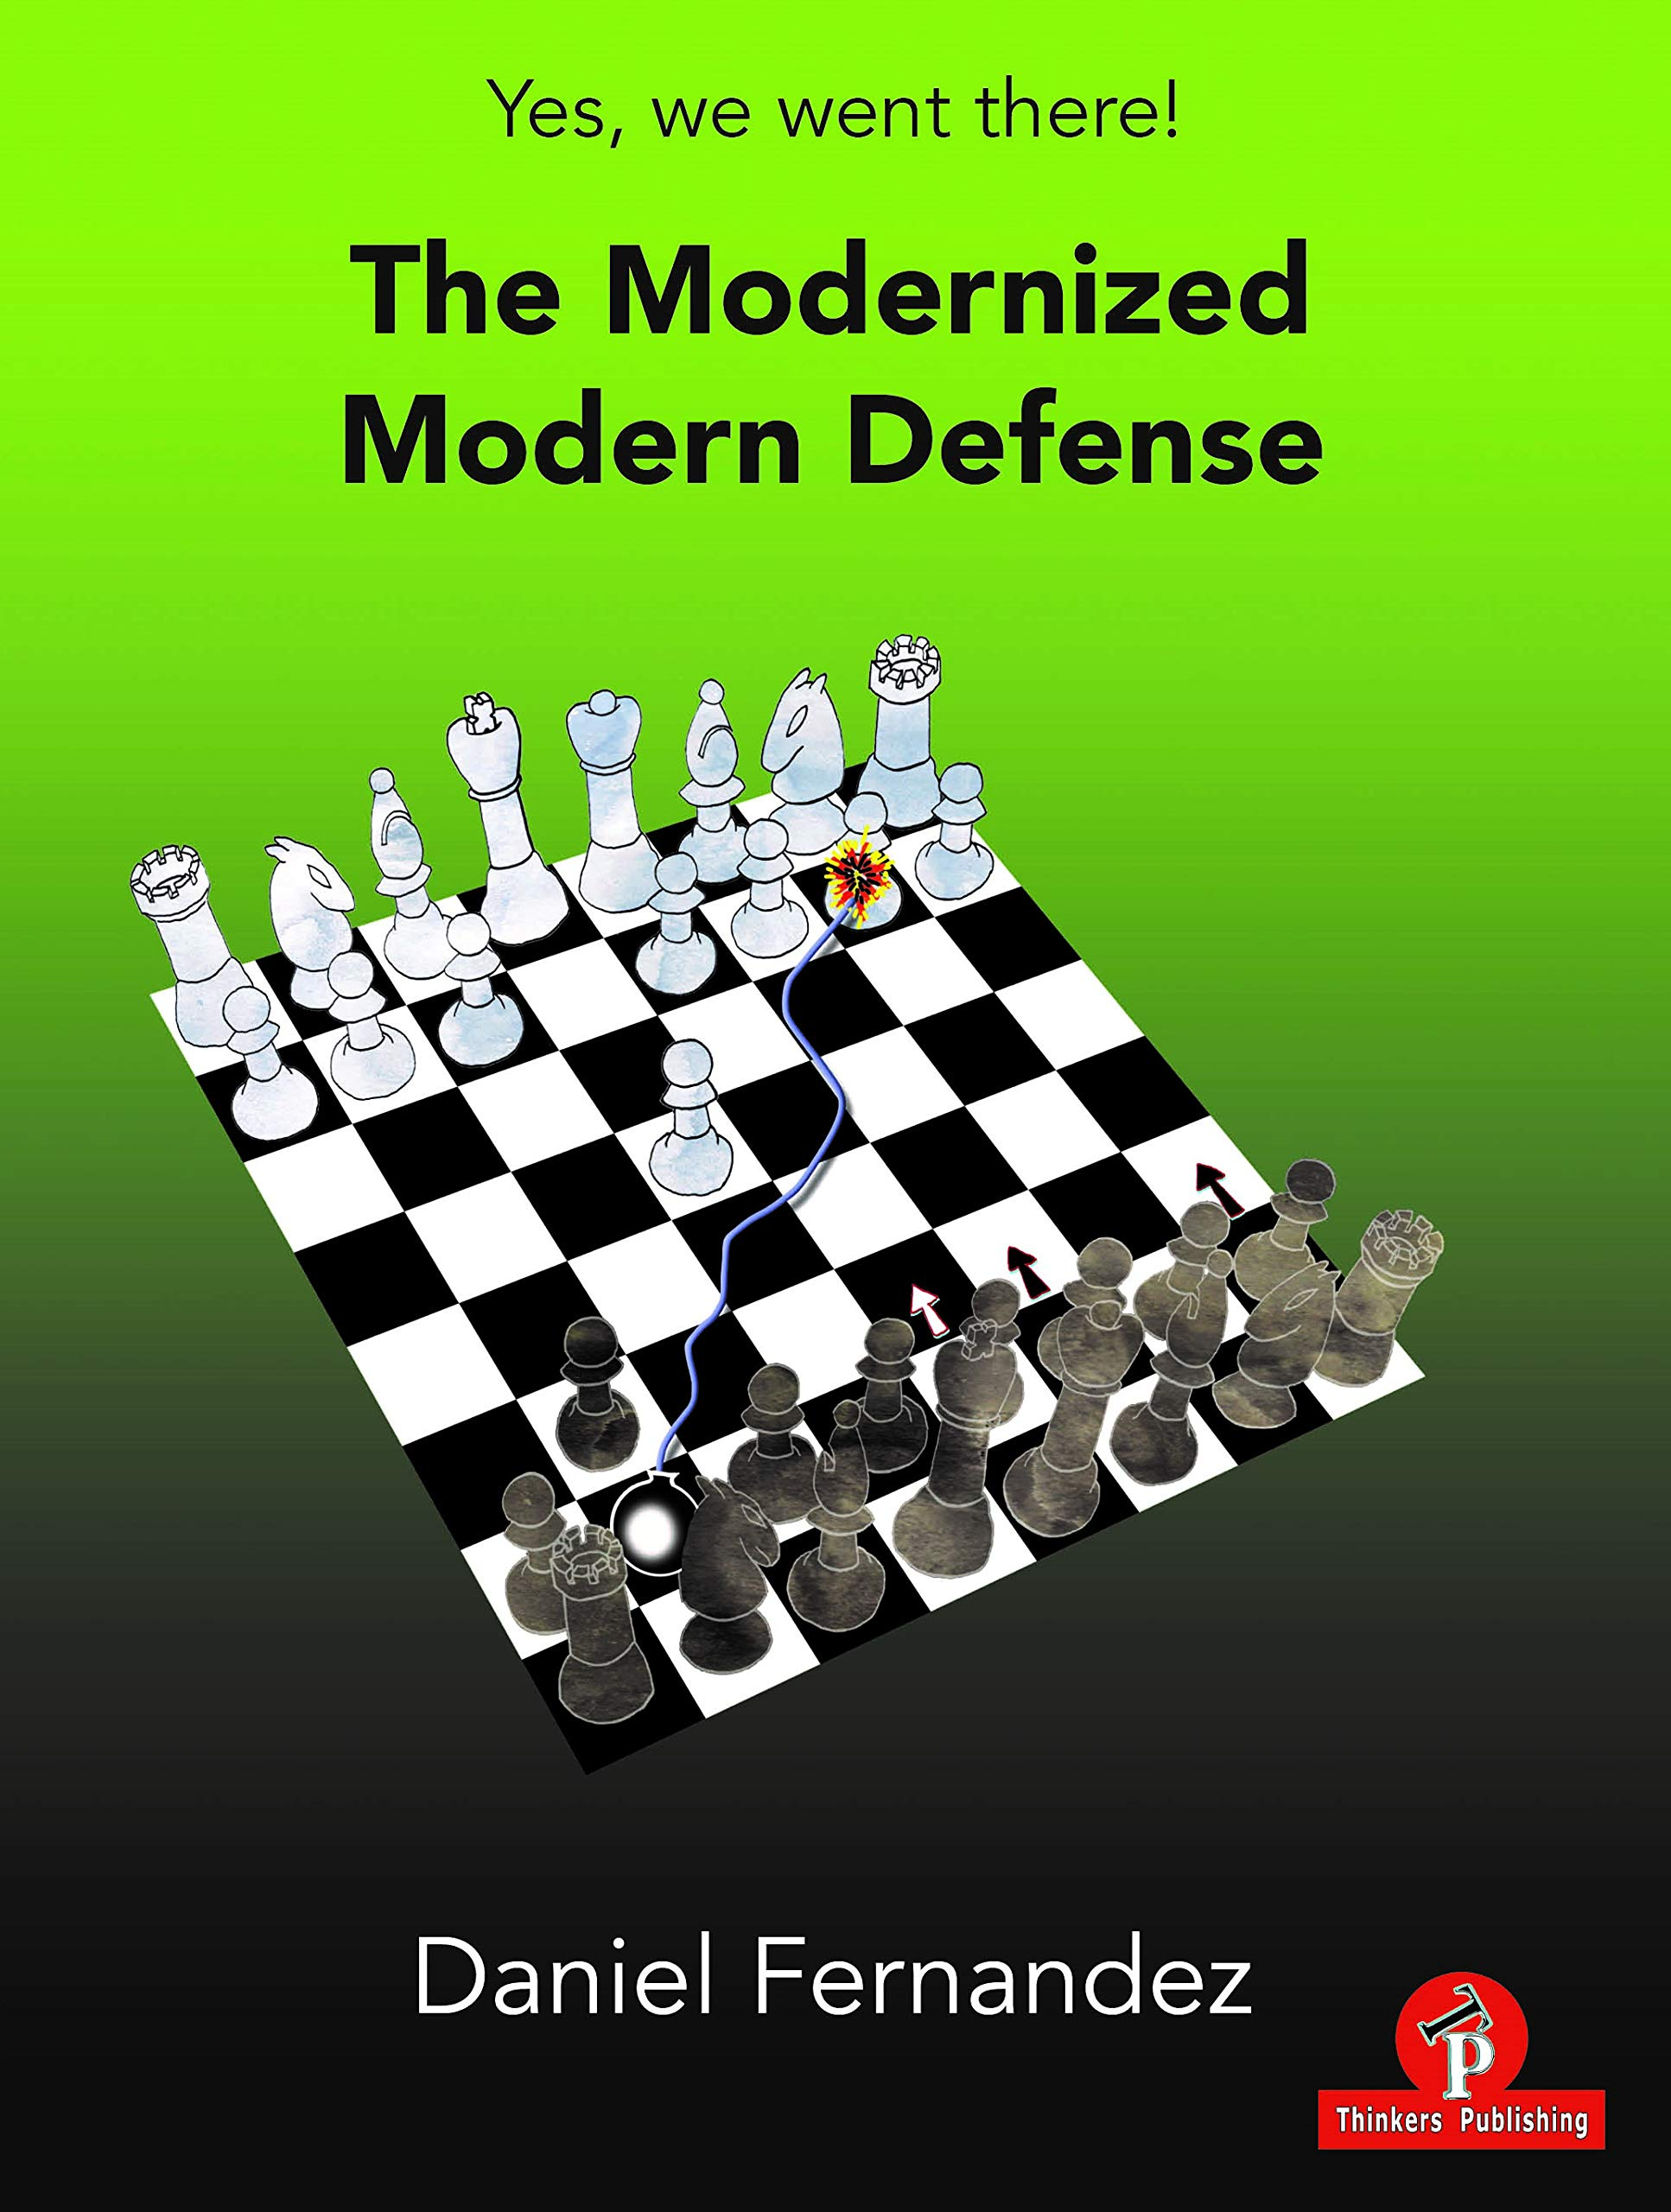 The Modernized Modern Defence, Daniel Fernandez, Thinker's Publishing, 2021